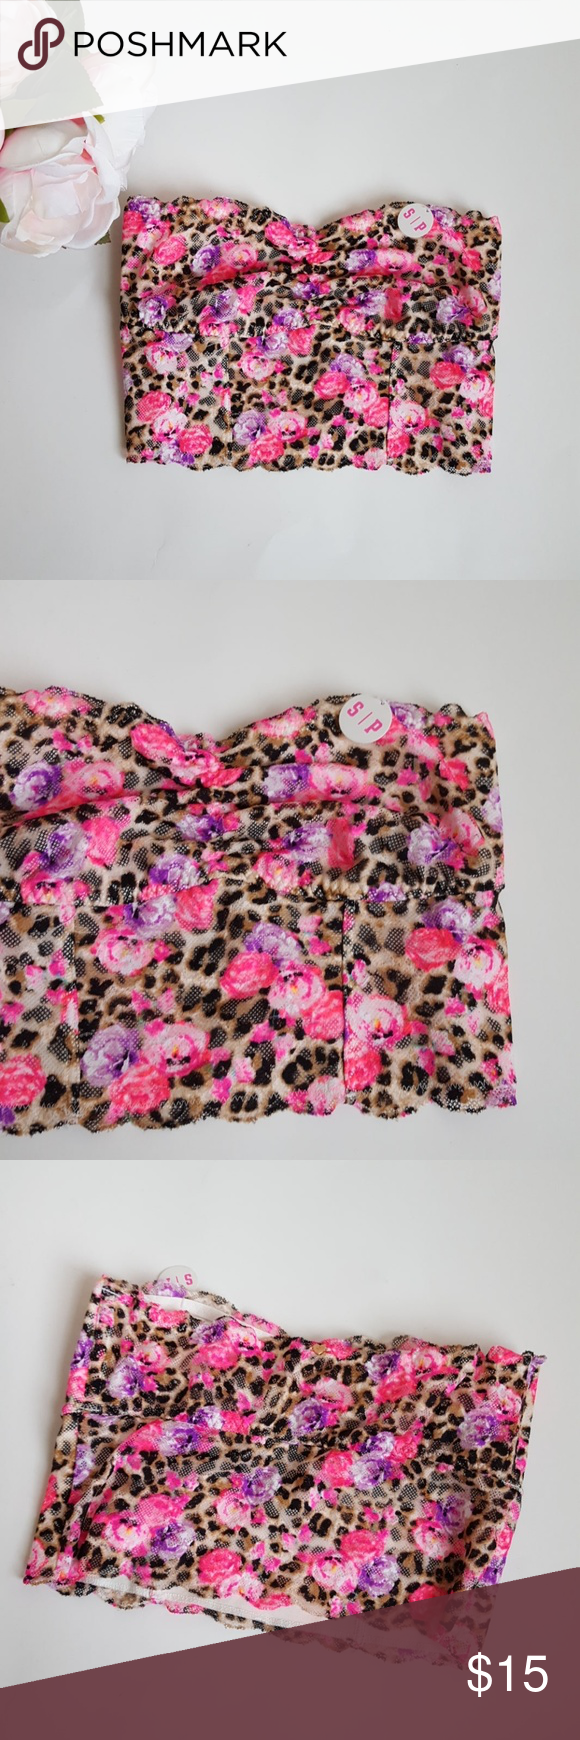 4ae17f6ac8f PINK lace bralette floral leopard print -D3 New with tags! Victoria s  Secret bralette